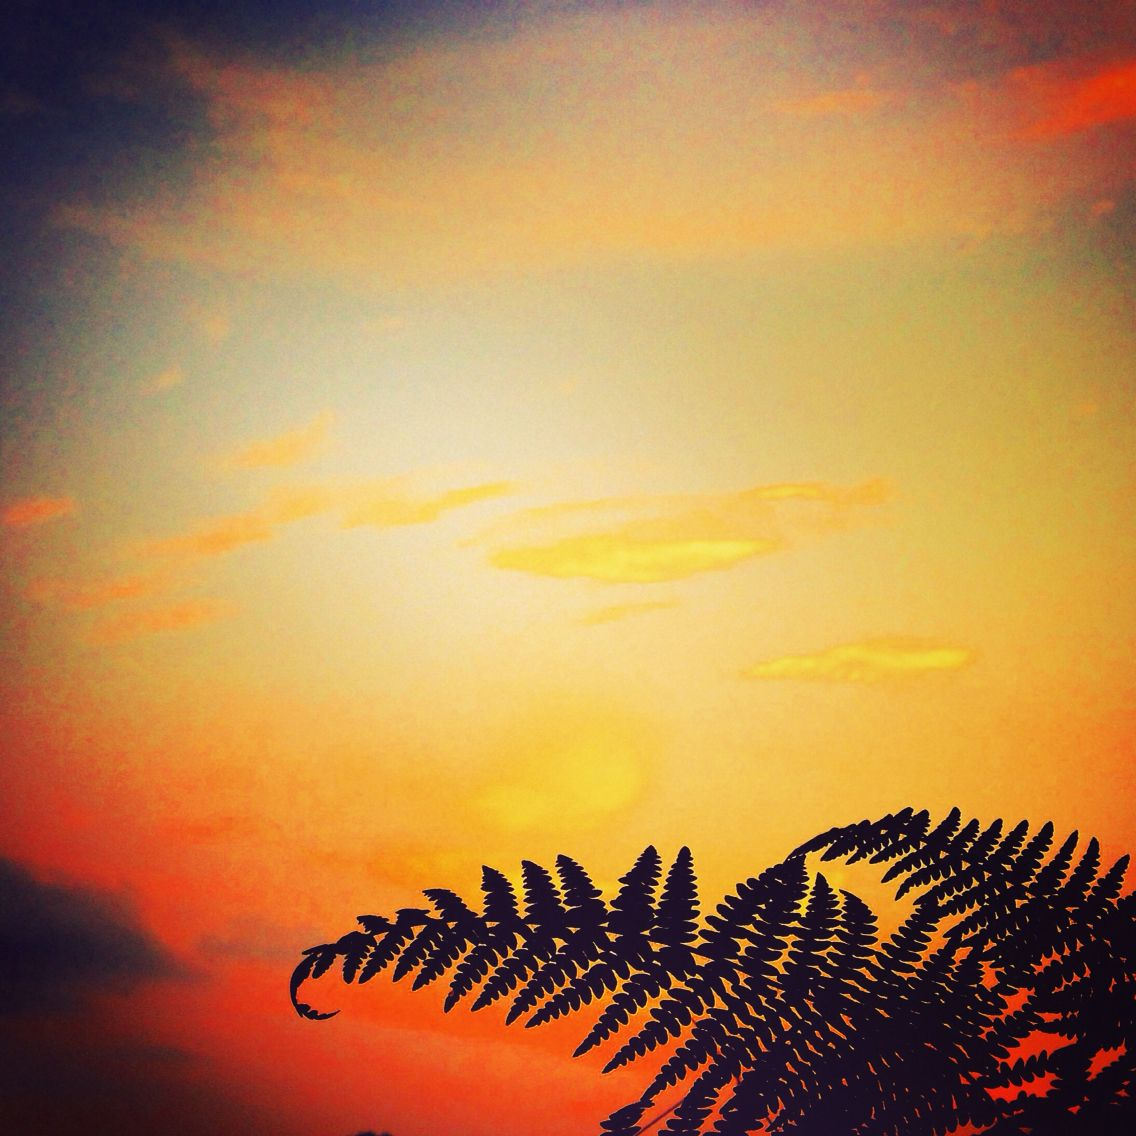 The capitulating curl of a drying fern against an autumn sunset. #fern #sunset #english #beautiful #sky #landscape #bucolic #pastoral #peace #tranquil #love #romance #evening #foliage #pretty #pastel #orange #silhouette #leaf #curl #newforest #forest #greenery